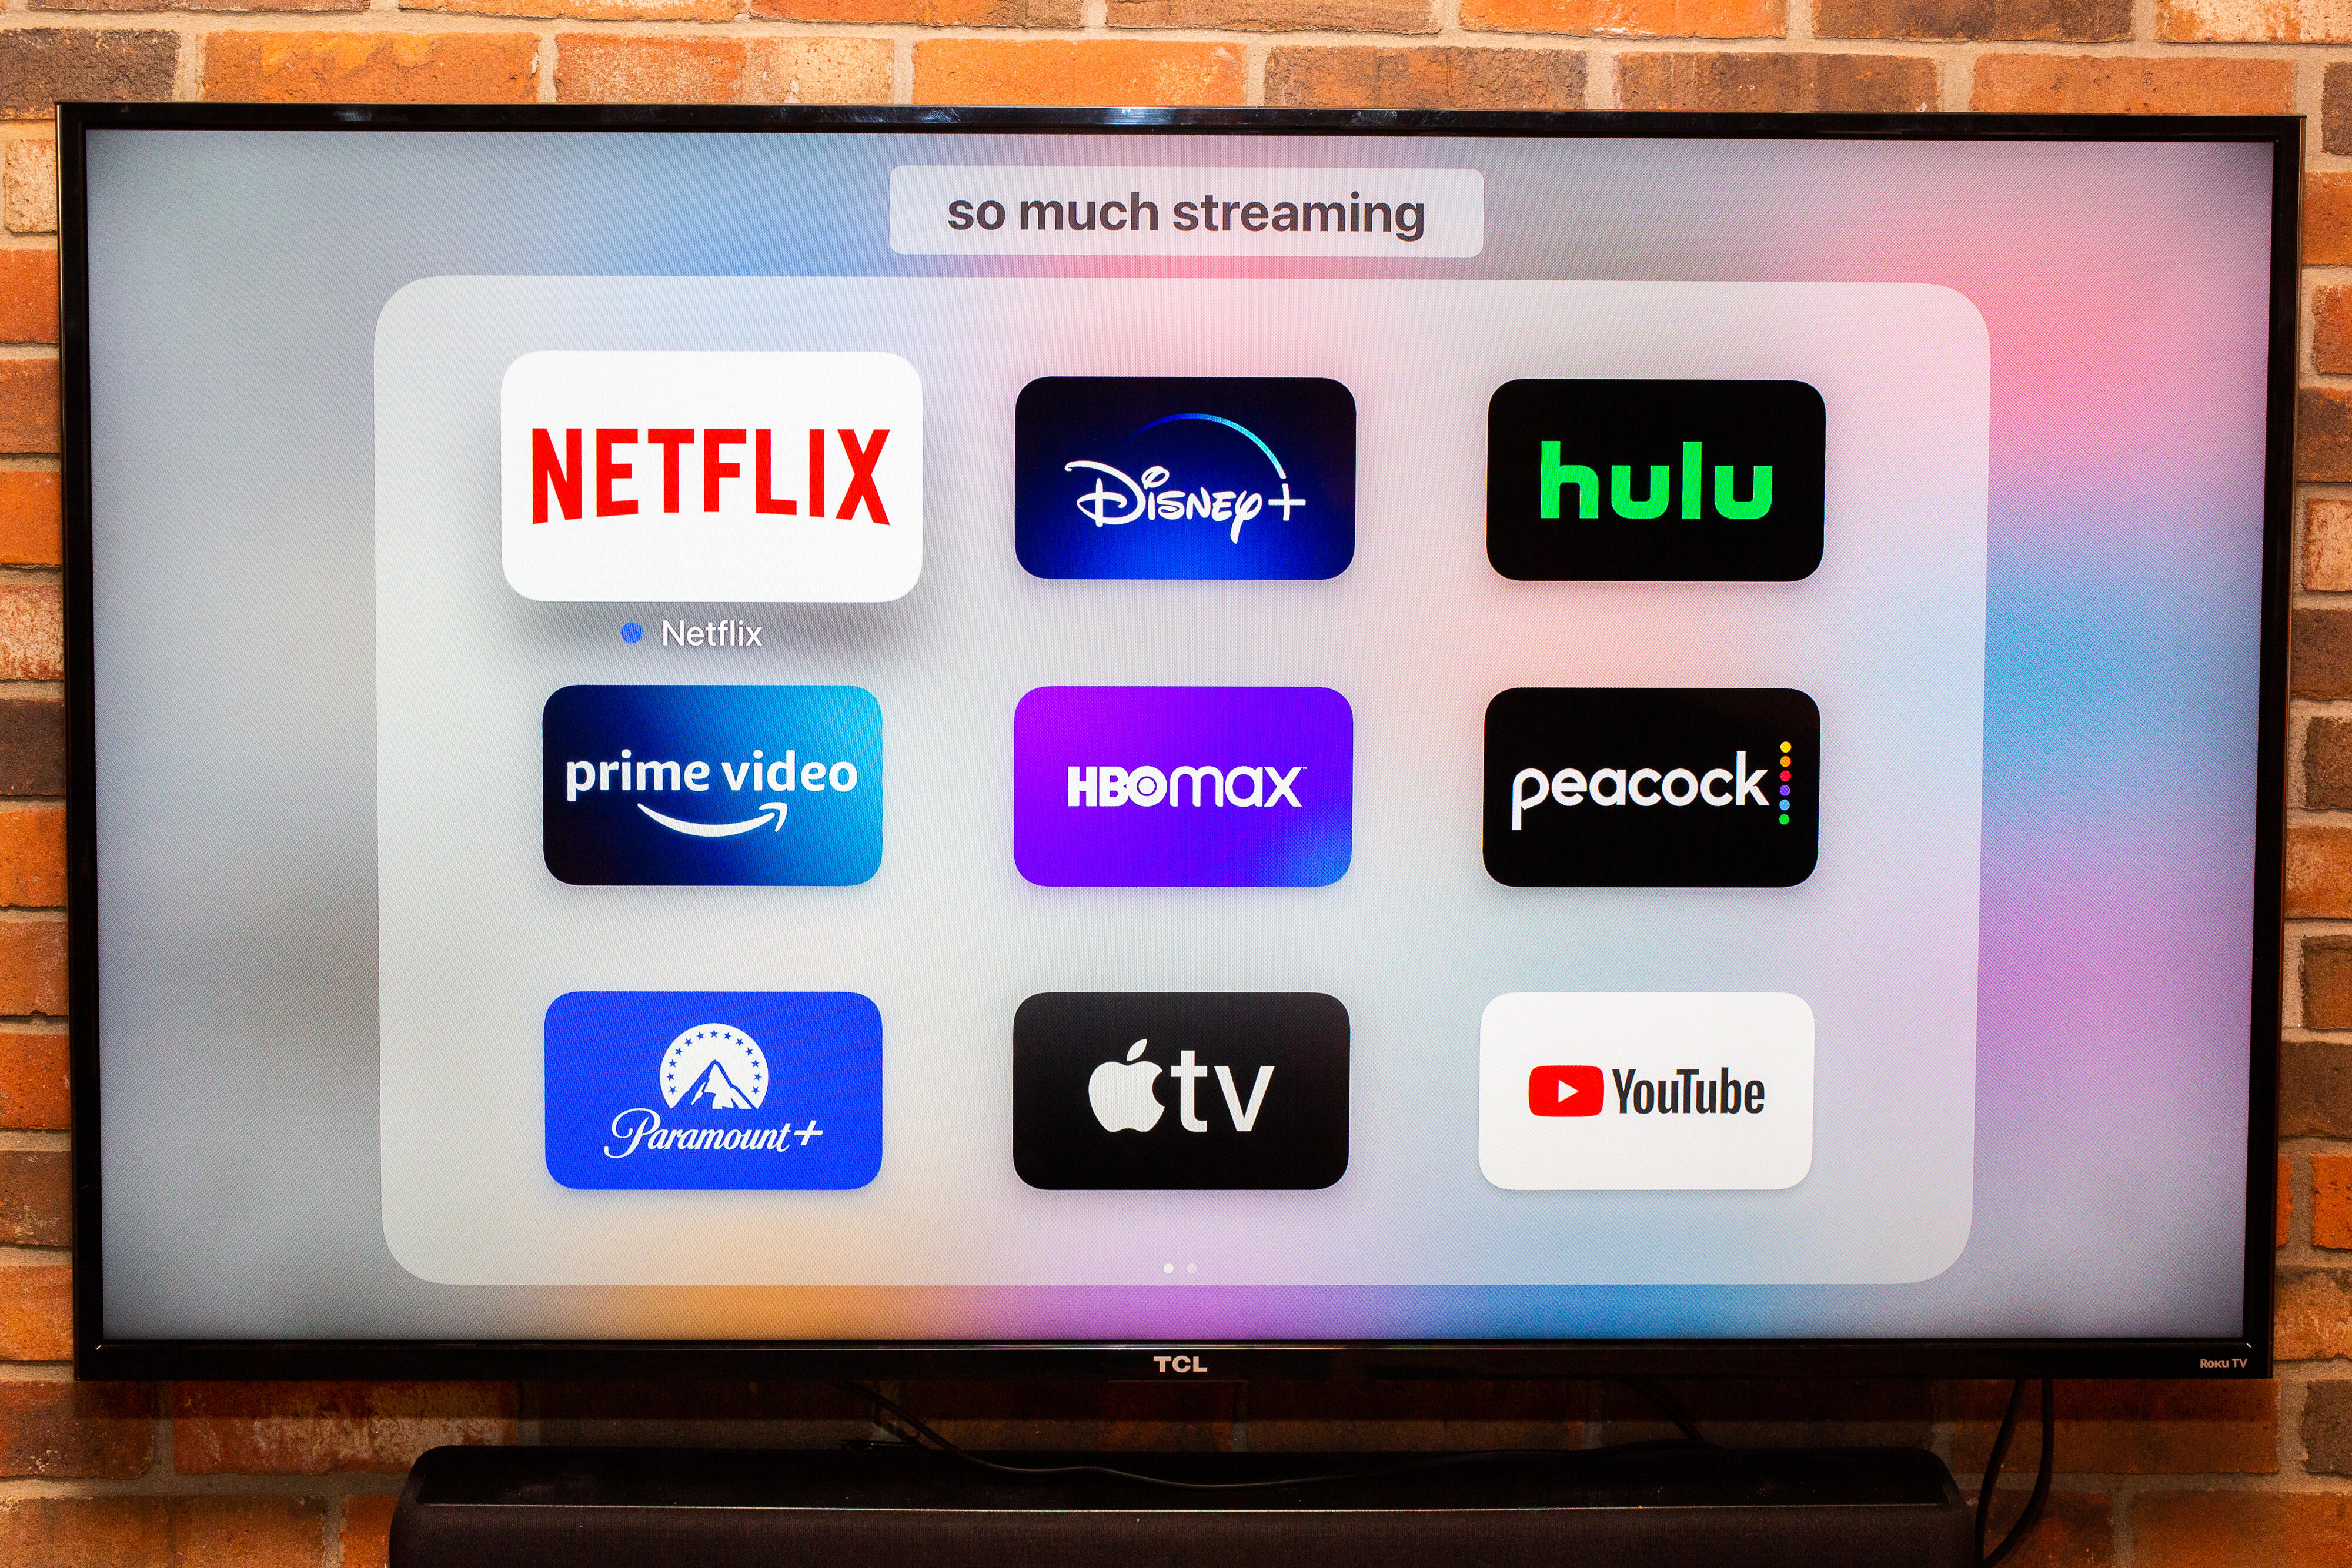 001-cnet-best-streaming-services-2020-promo-images